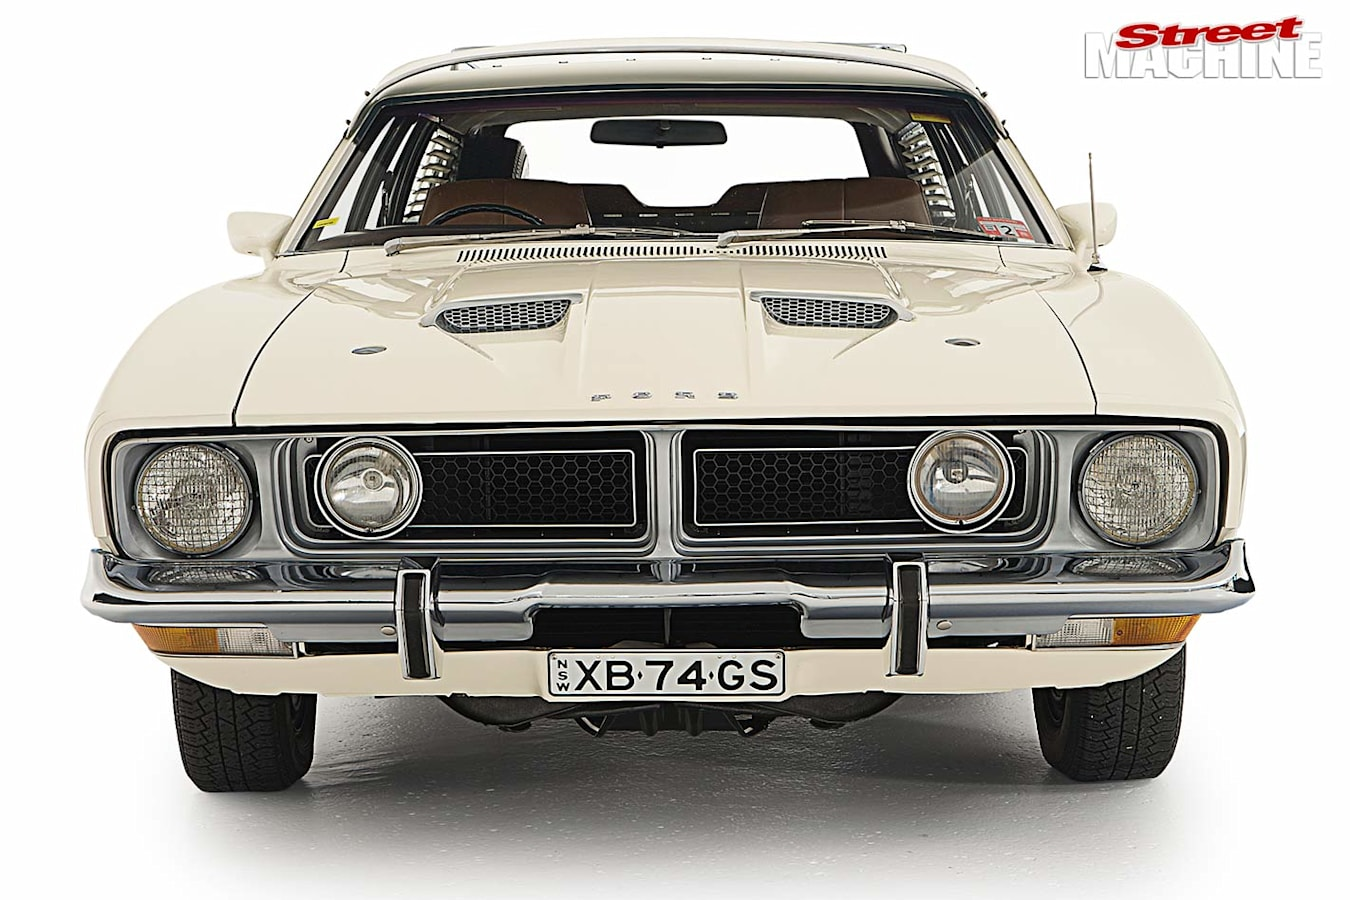 Ford Falcon XB wagon front